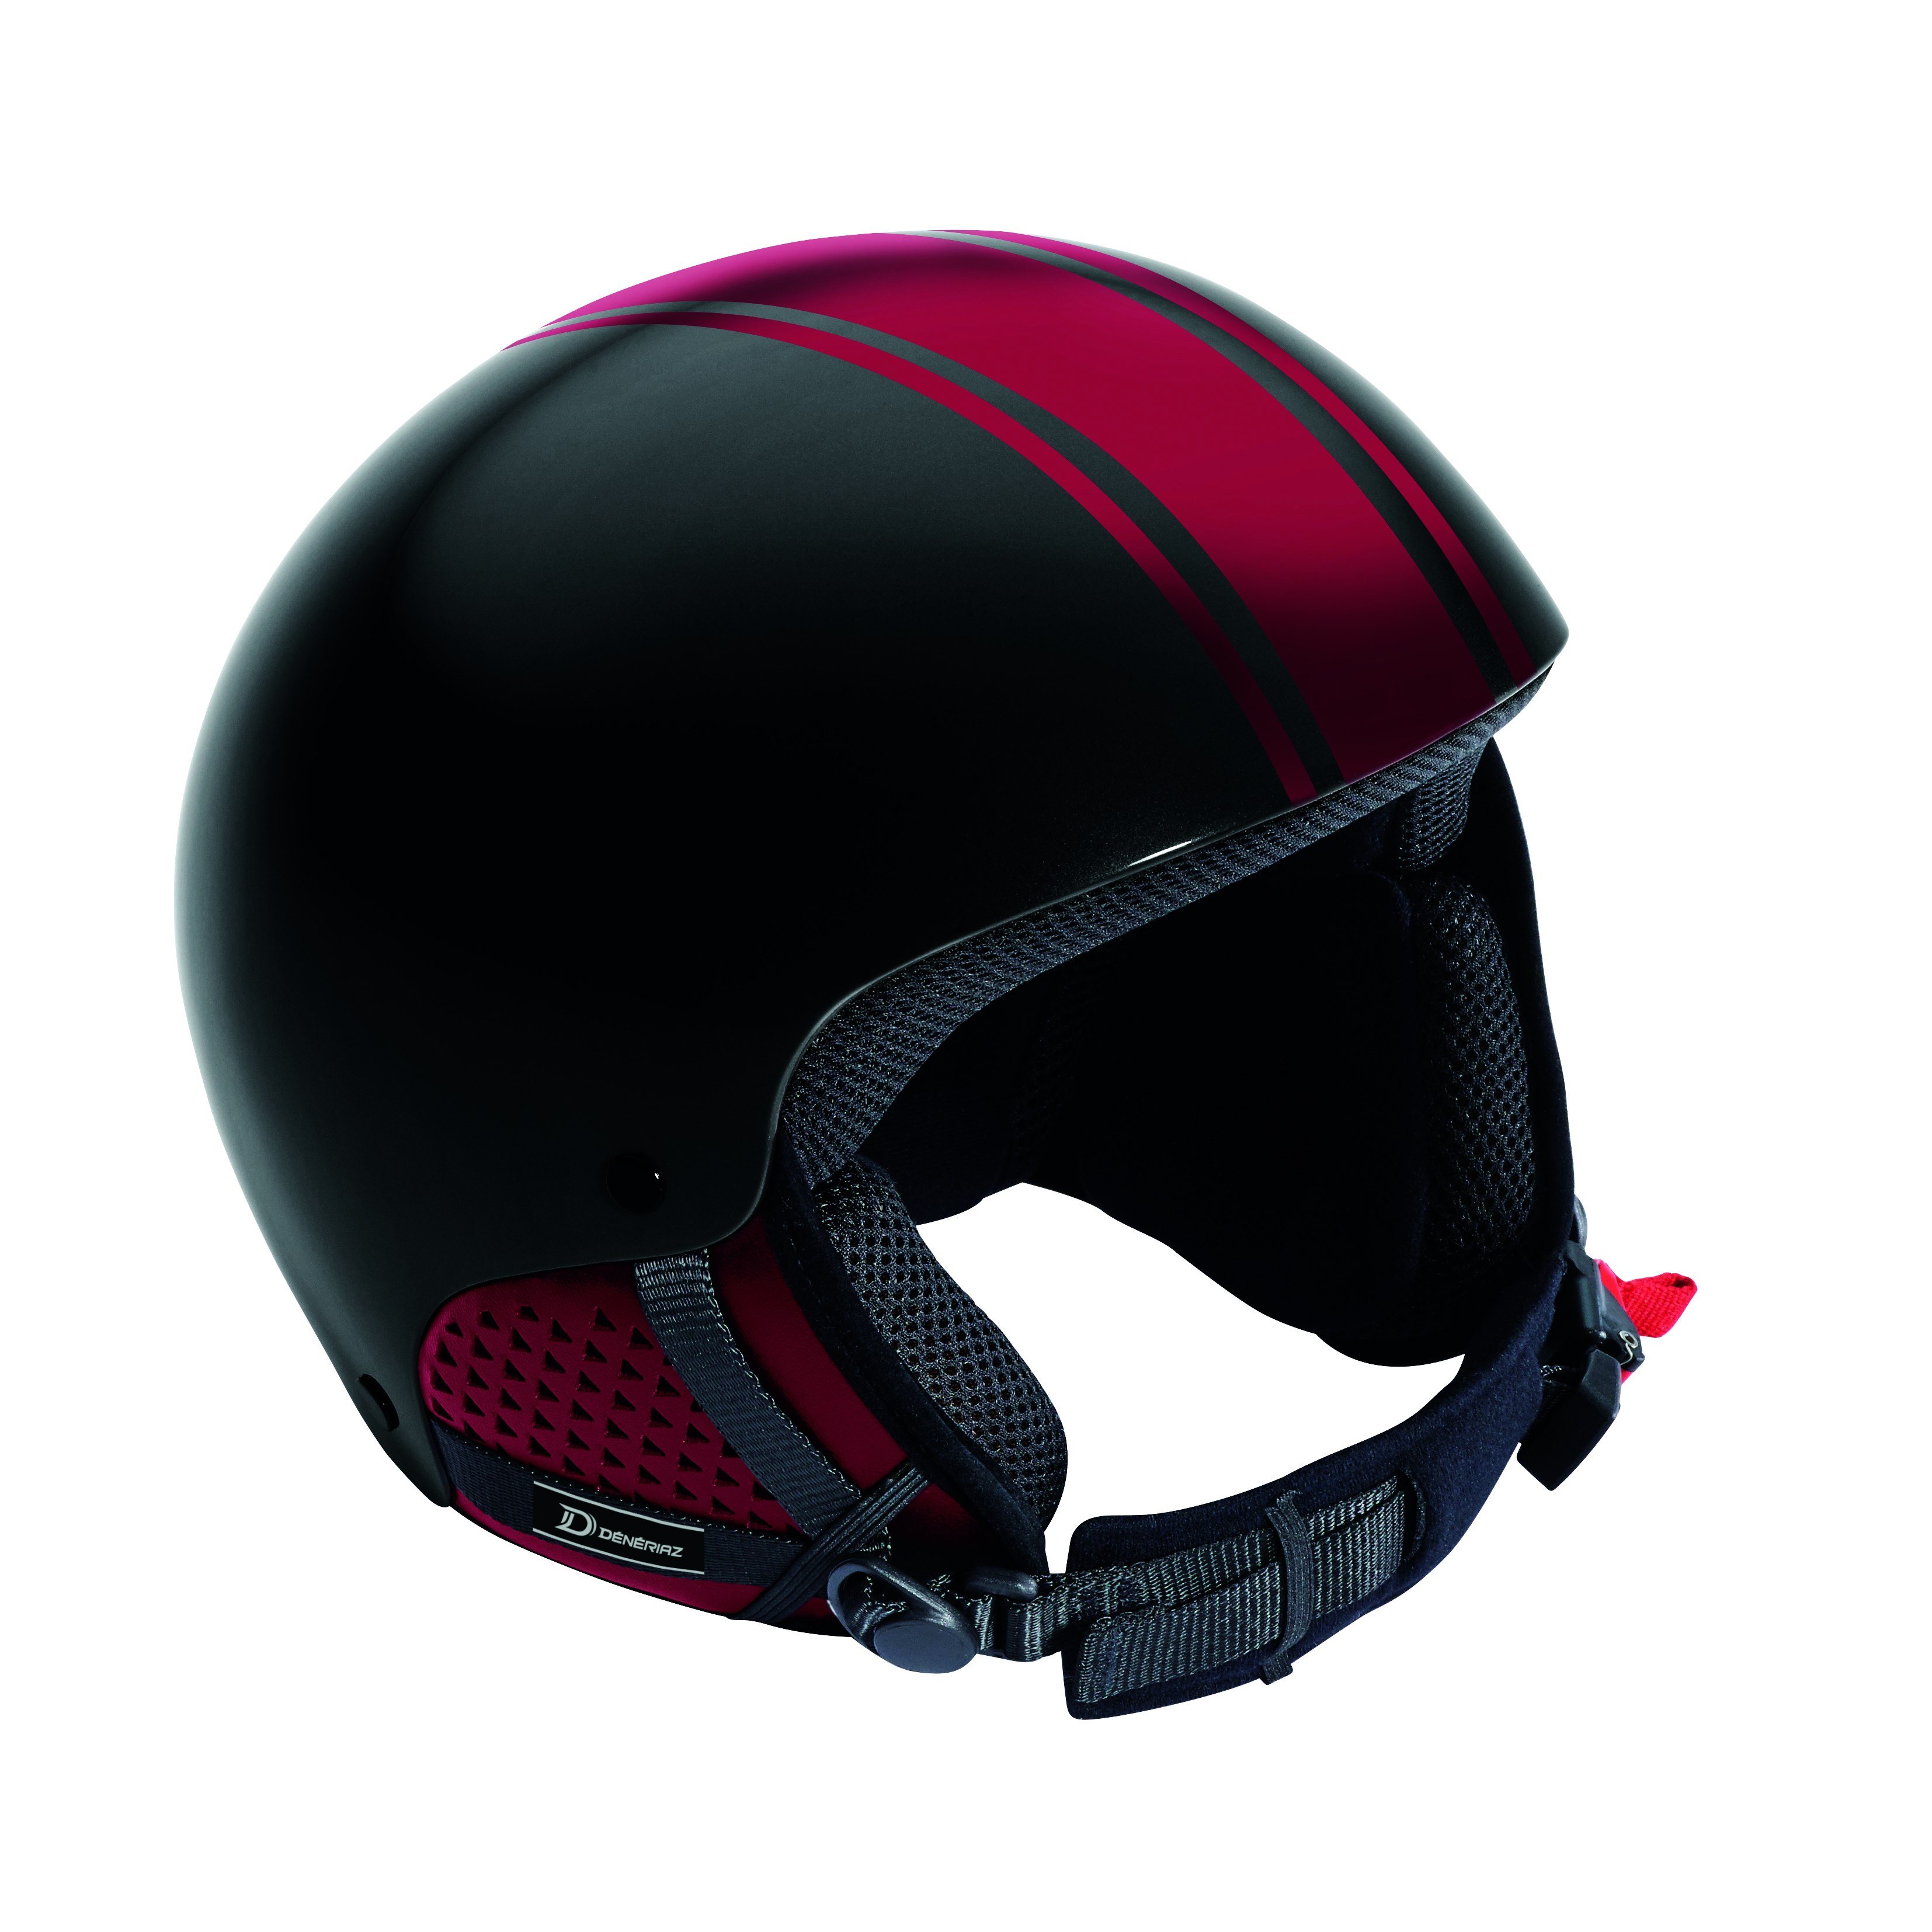 Deneriaz Torino Black and Red Ski Helmet